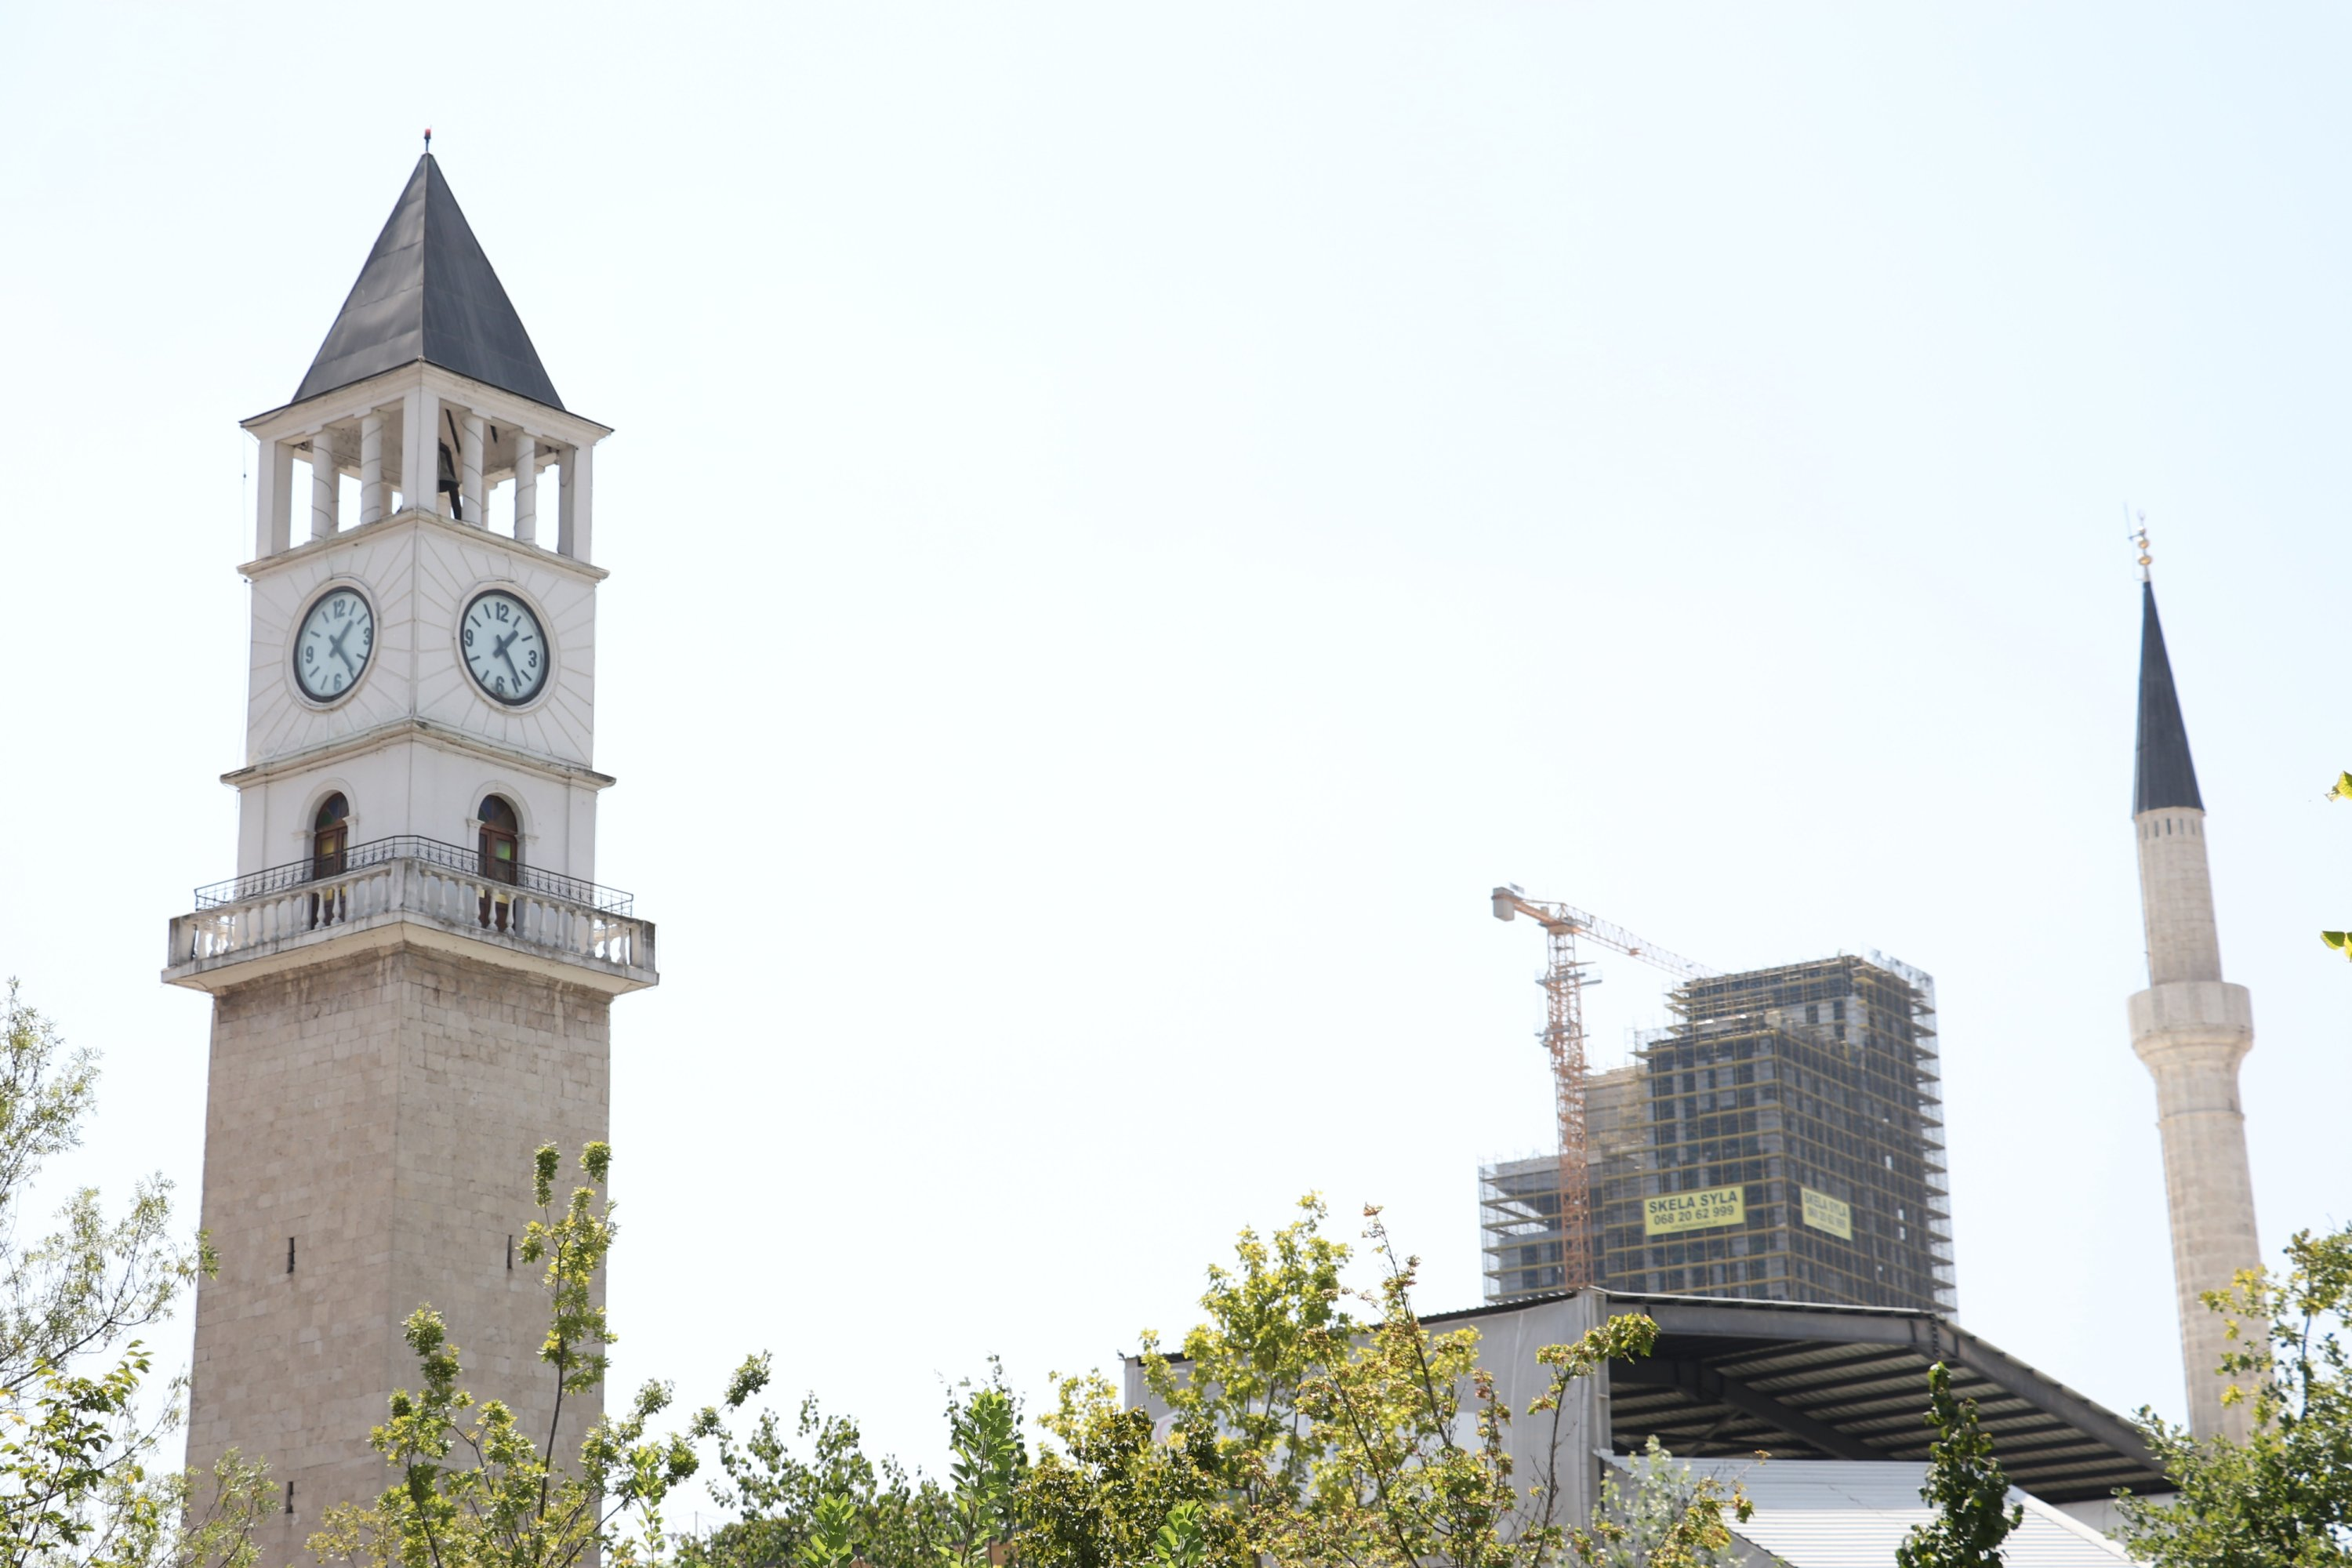 The Clock Tower of Tirana features four clocks on each side of its top, Tirana, Albania, Aug. 22, 2020. (AA PHOTO)